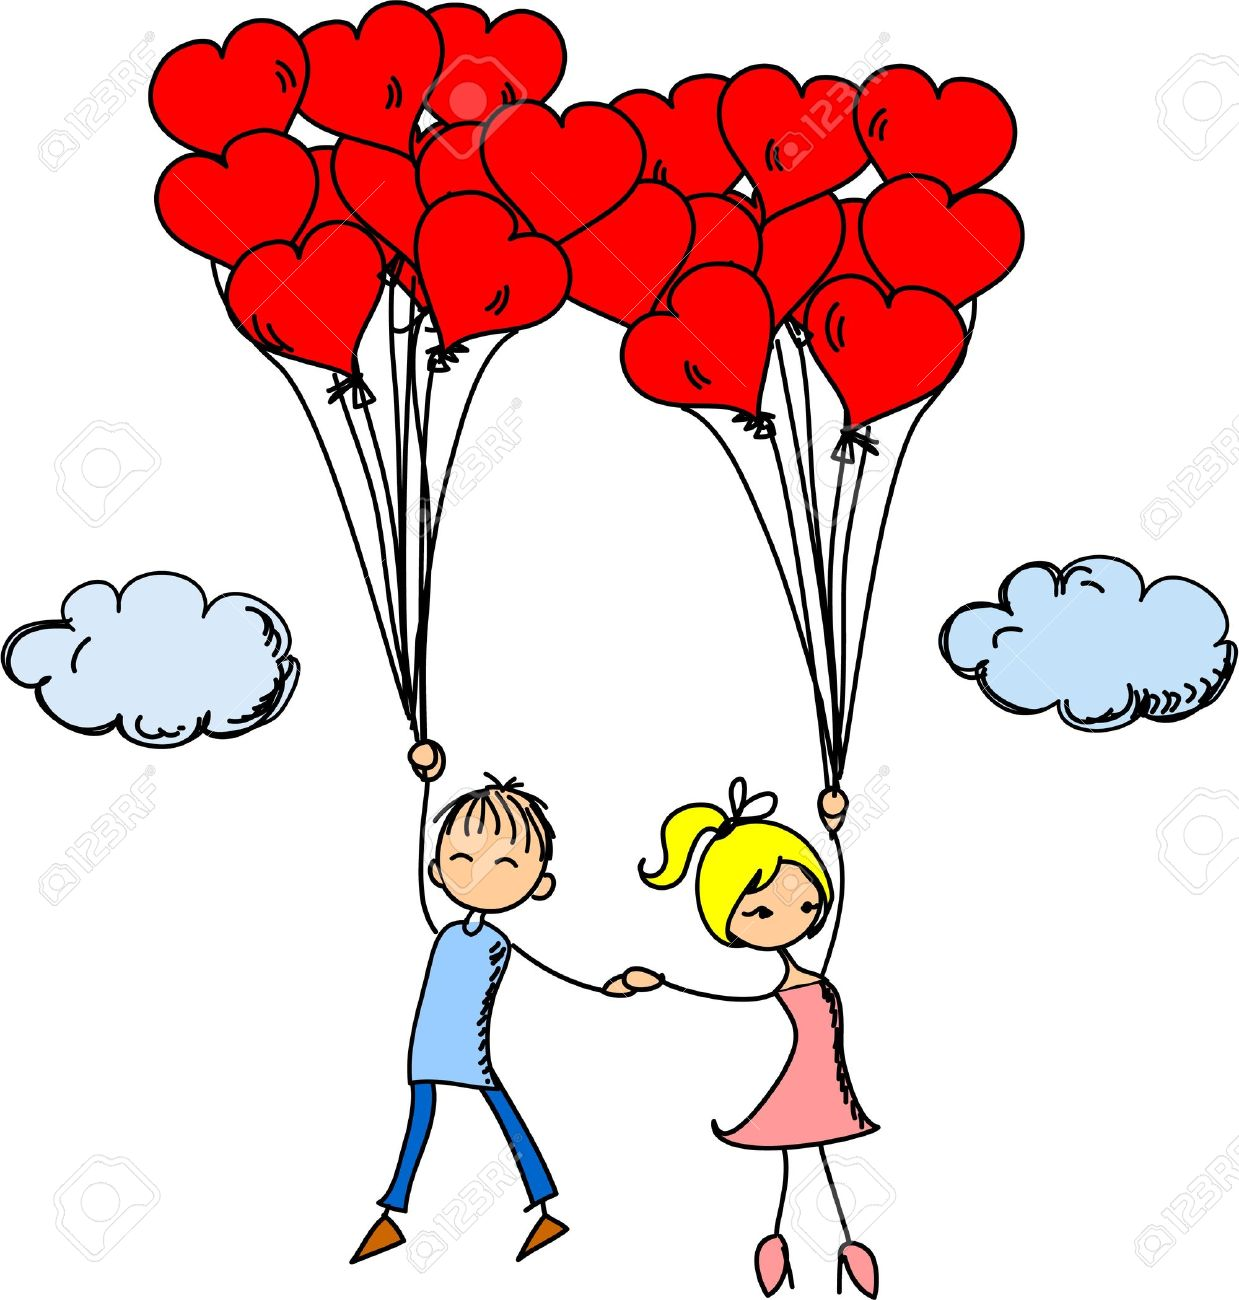 In love clipart clipart image royalty free Love Clipart - 81 cliparts image royalty free